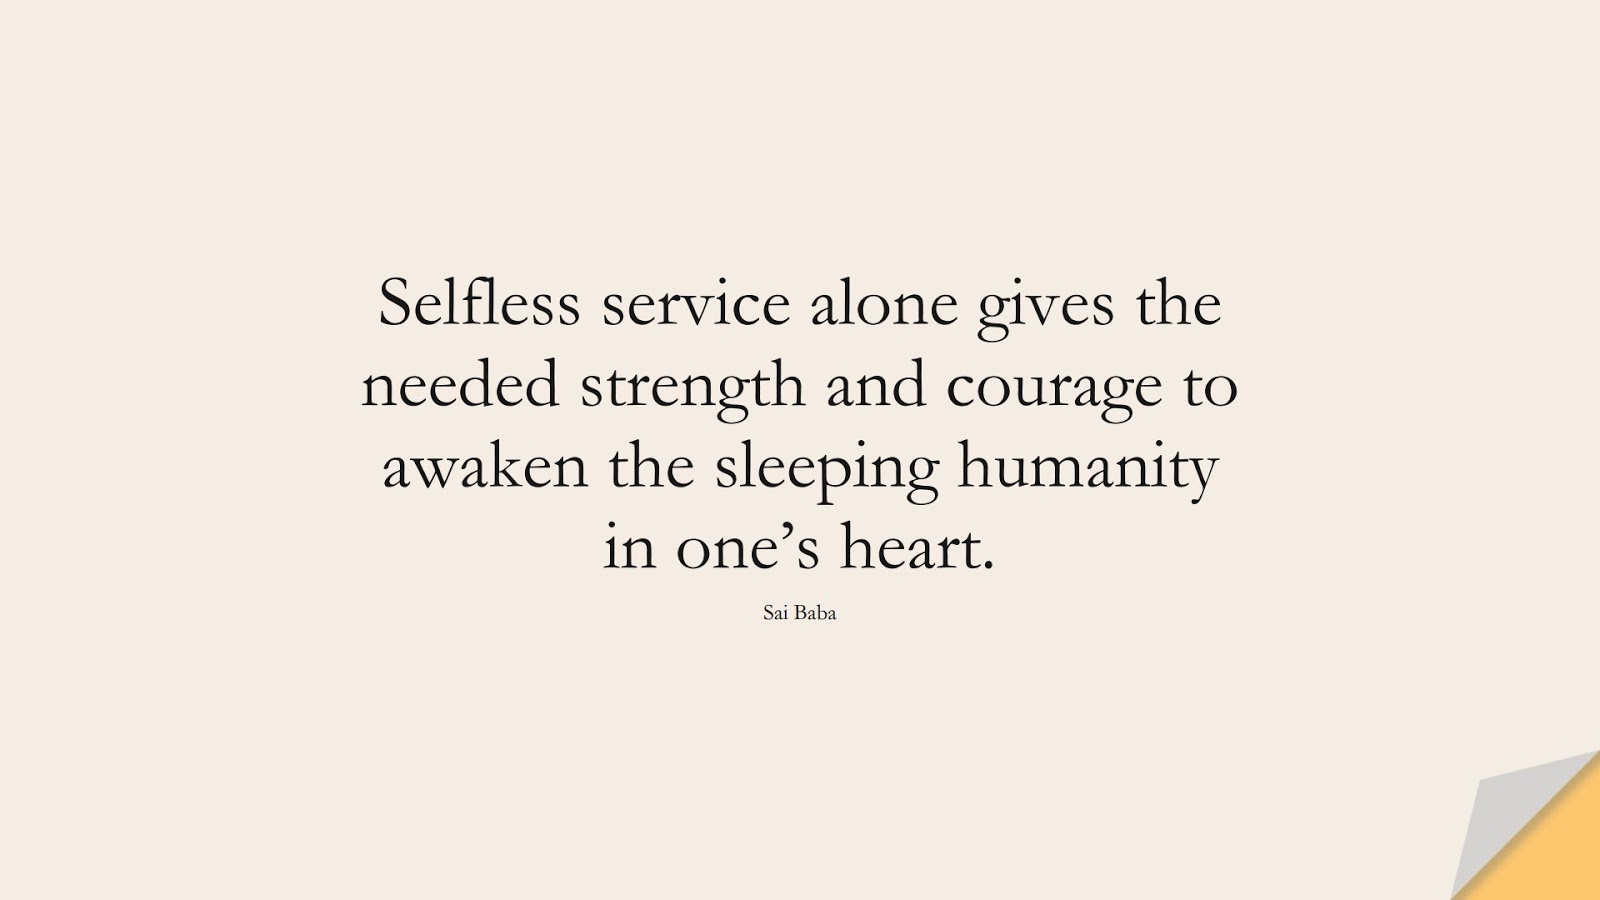 Selfless service alone gives the needed strength and courage to awaken the sleeping humanity in one's heart. (Sai Baba);  #HumanityQuotes